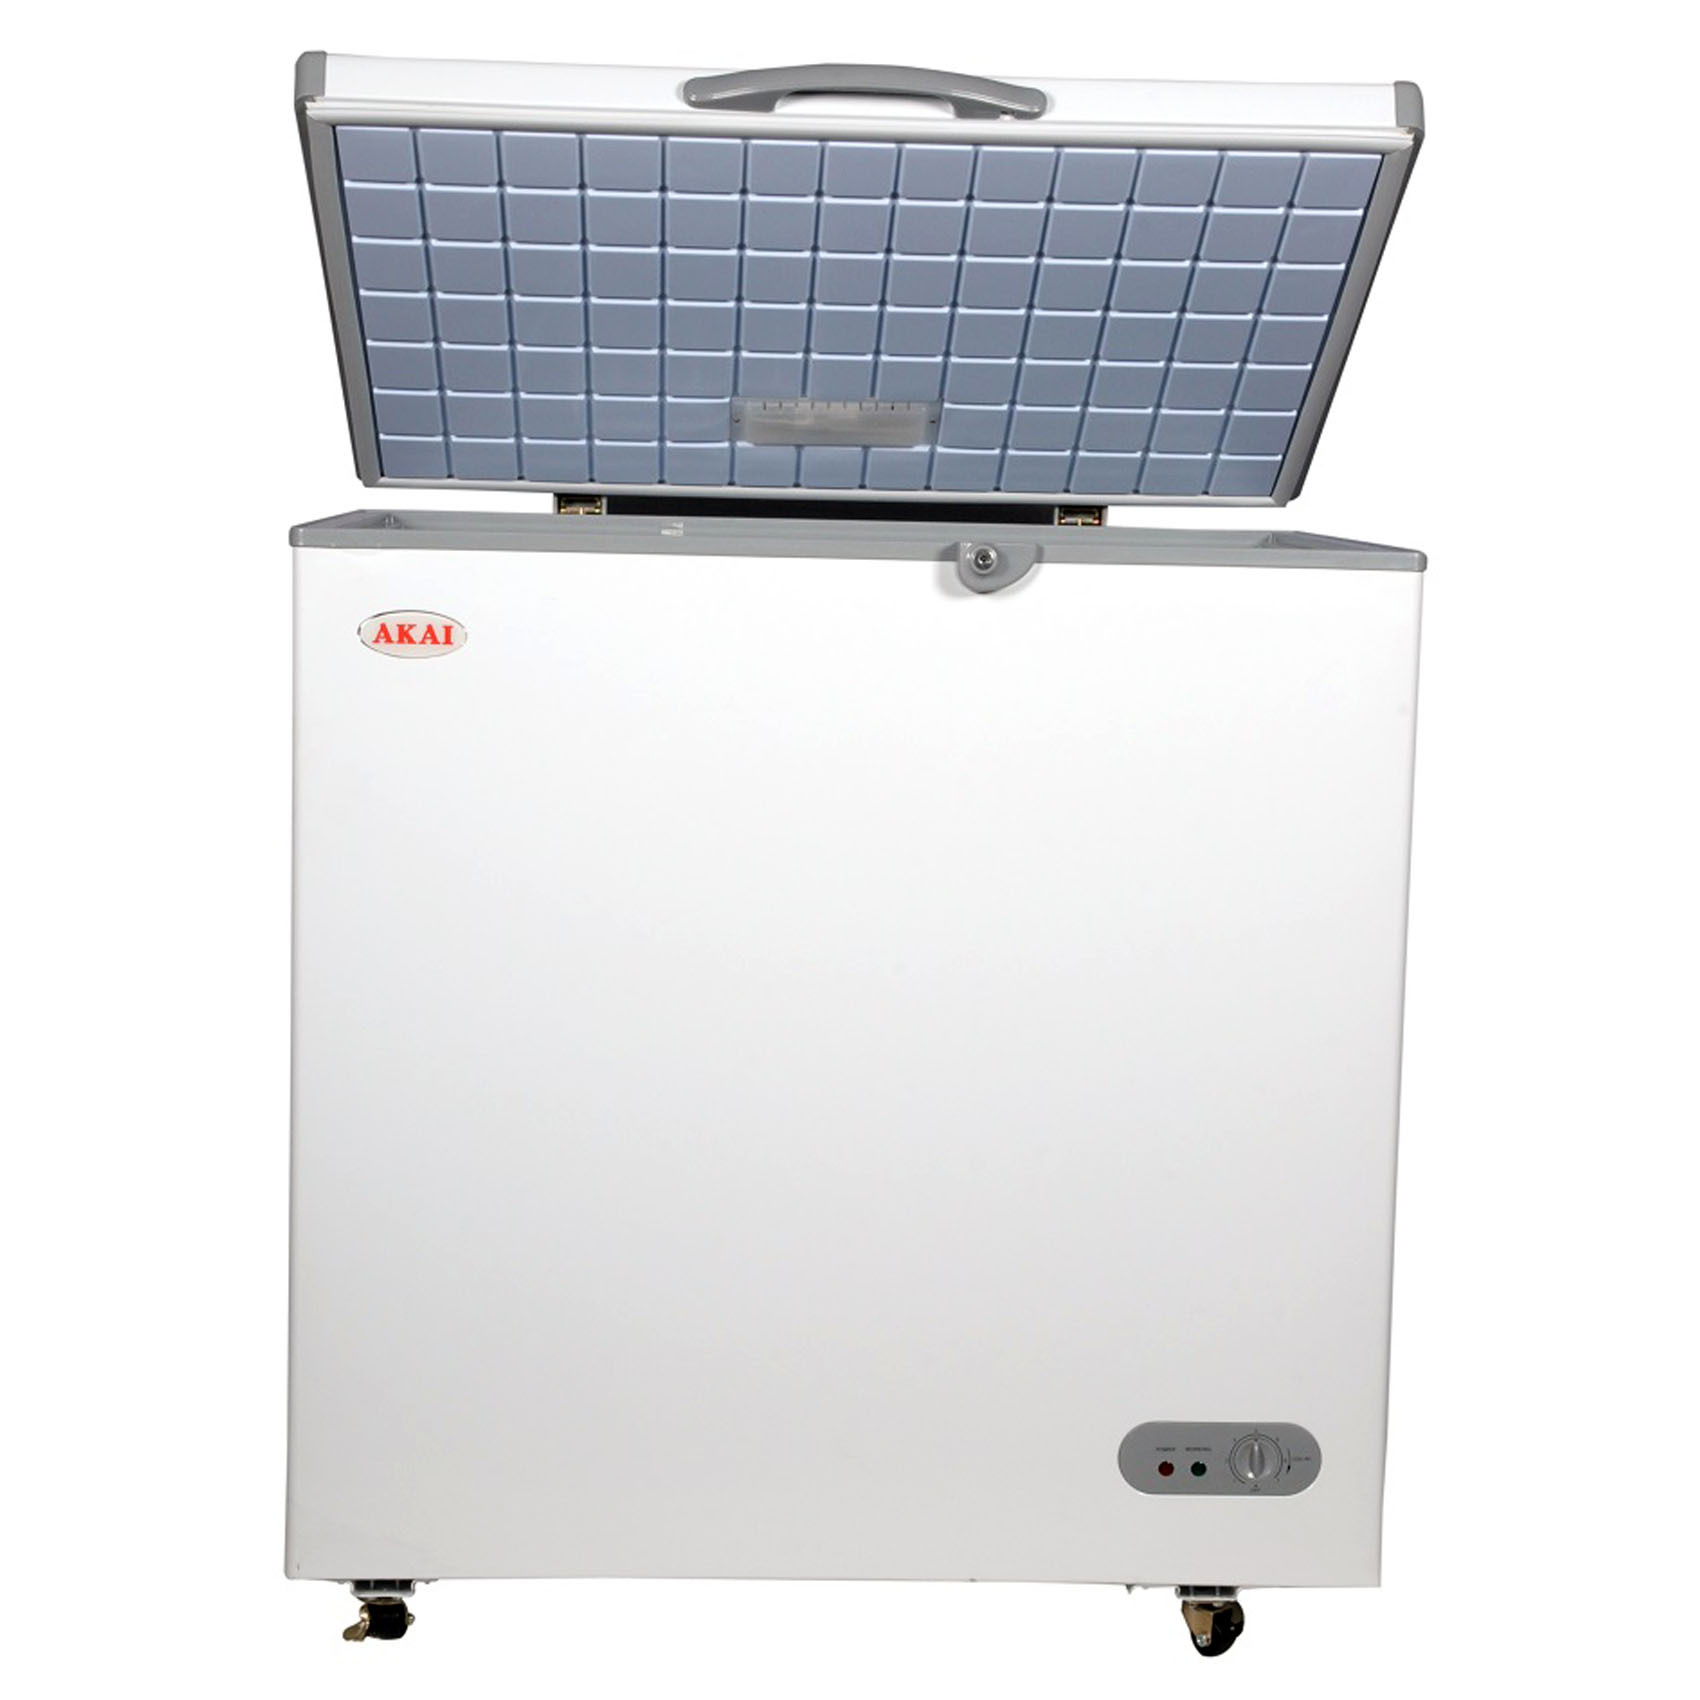 AKAI CHEST FREEZER CFMA-150CE 150L